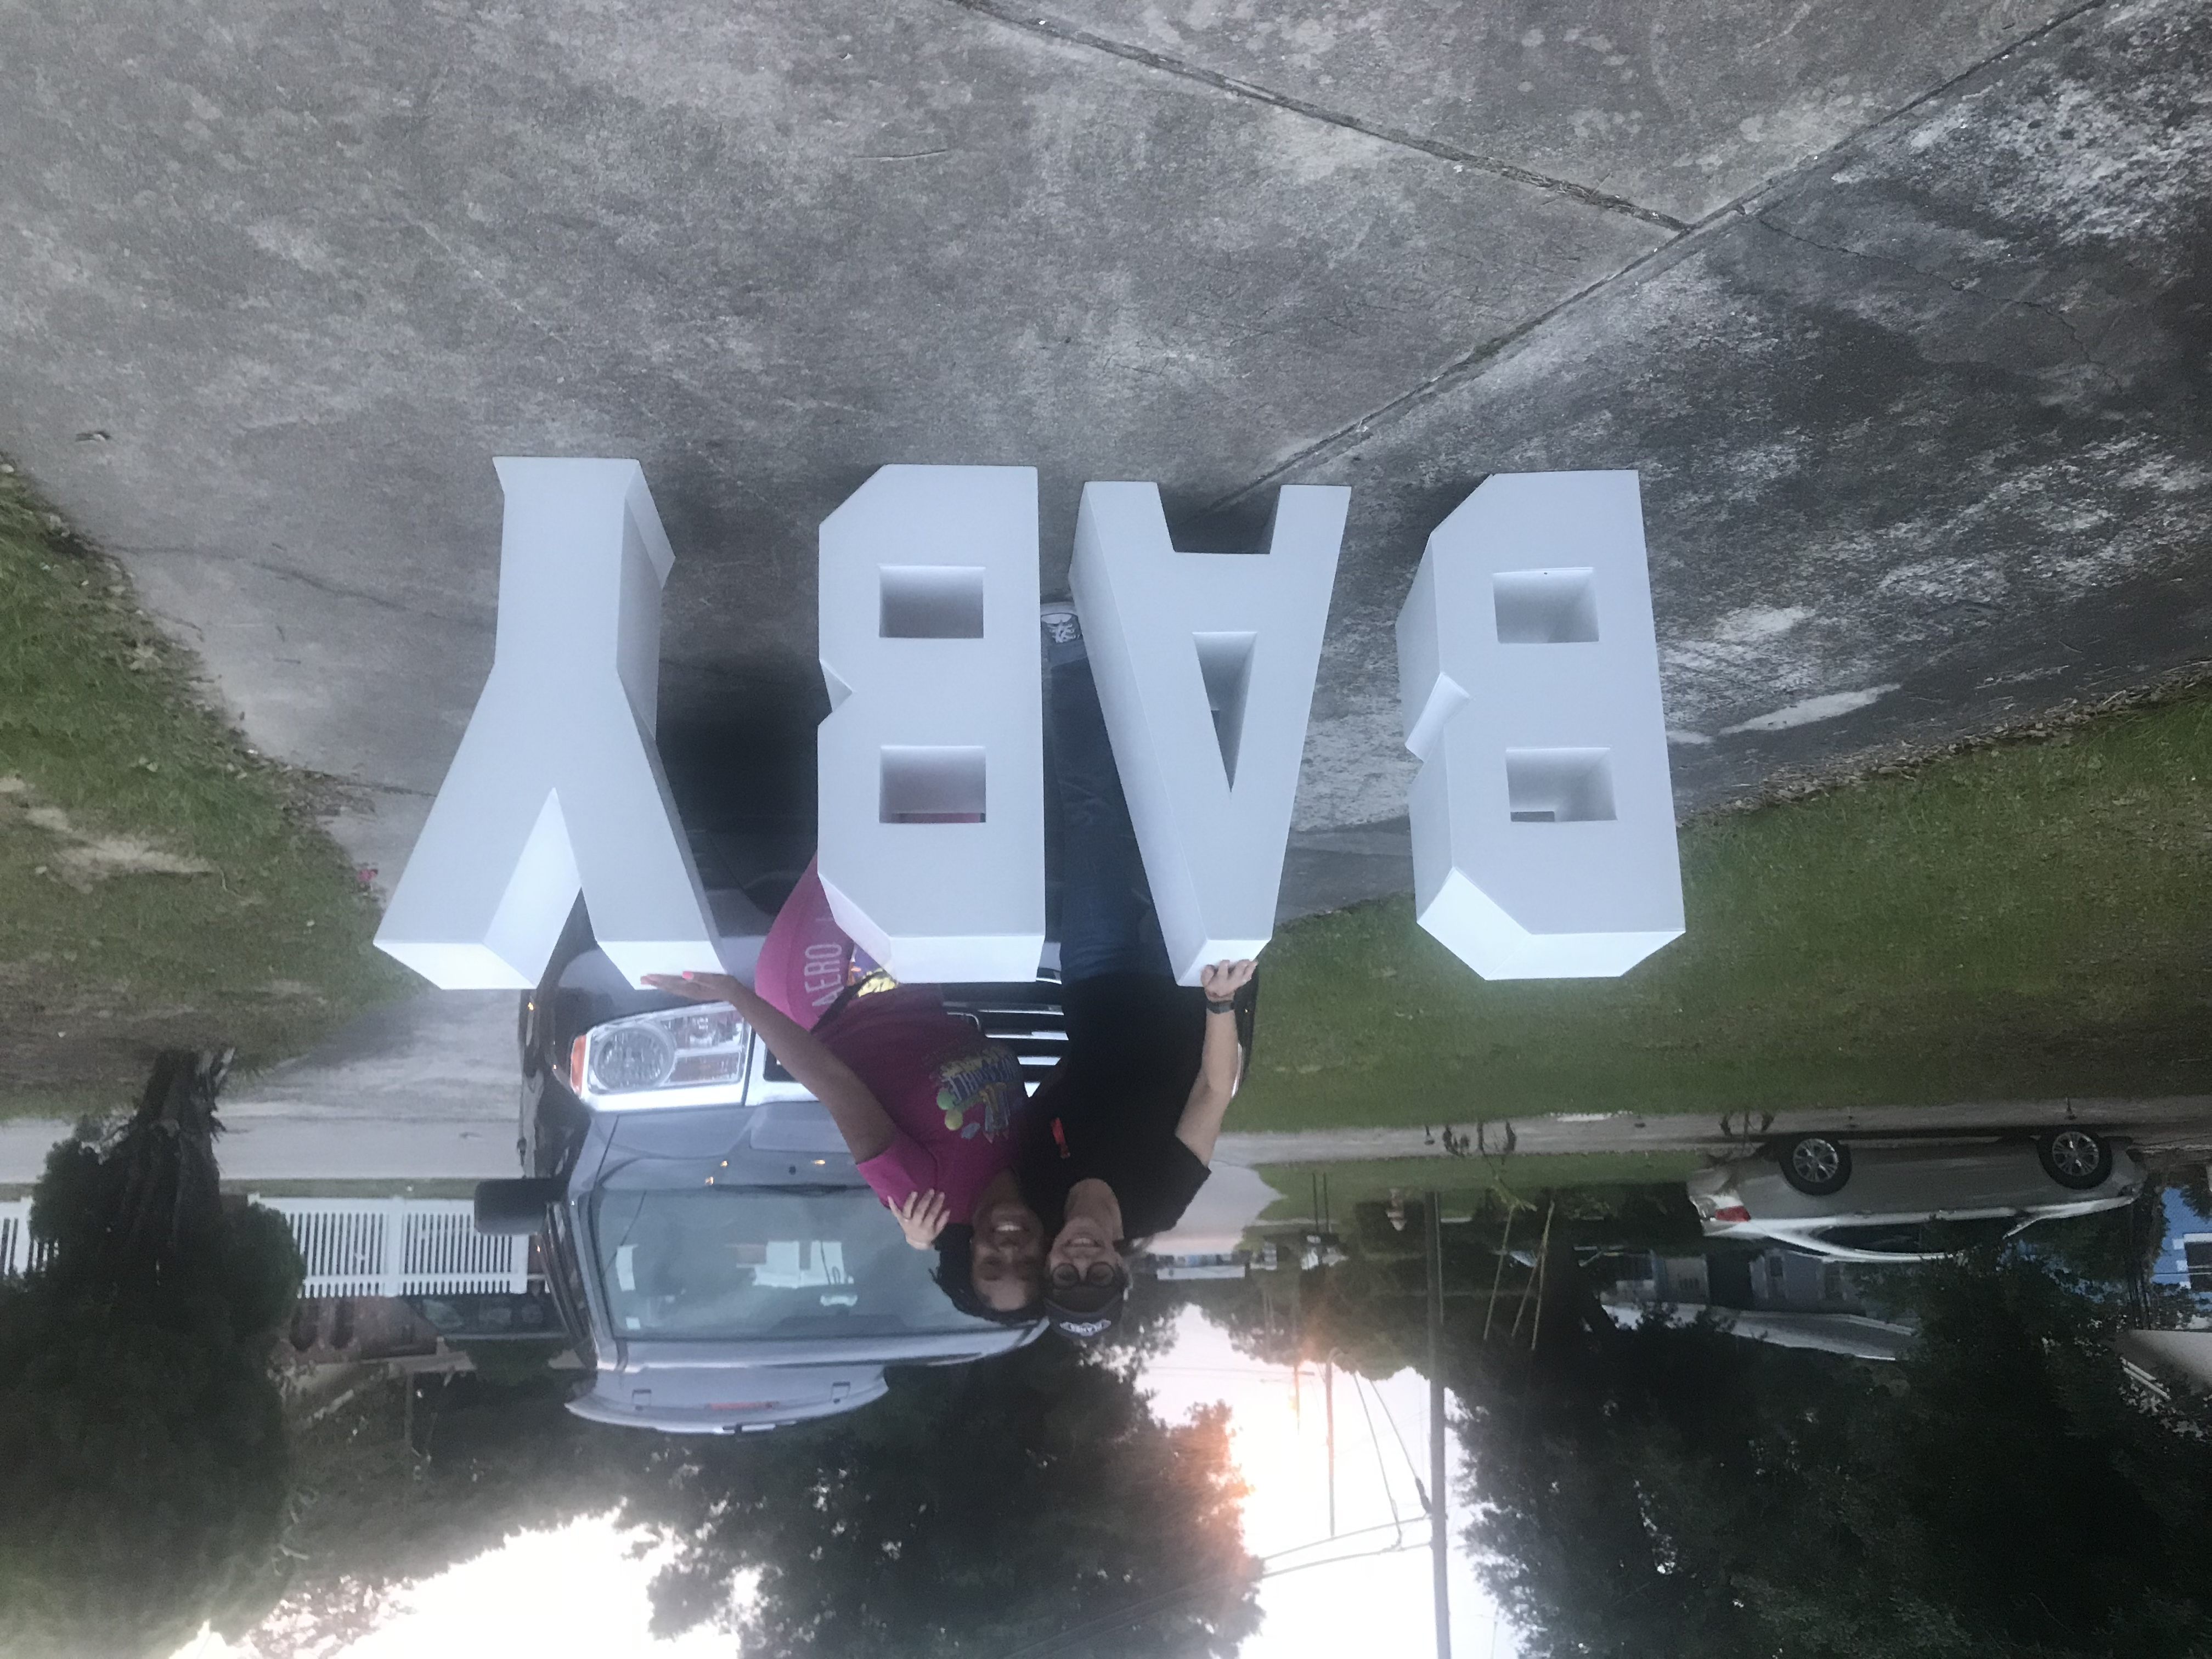 Giant Baby Letters